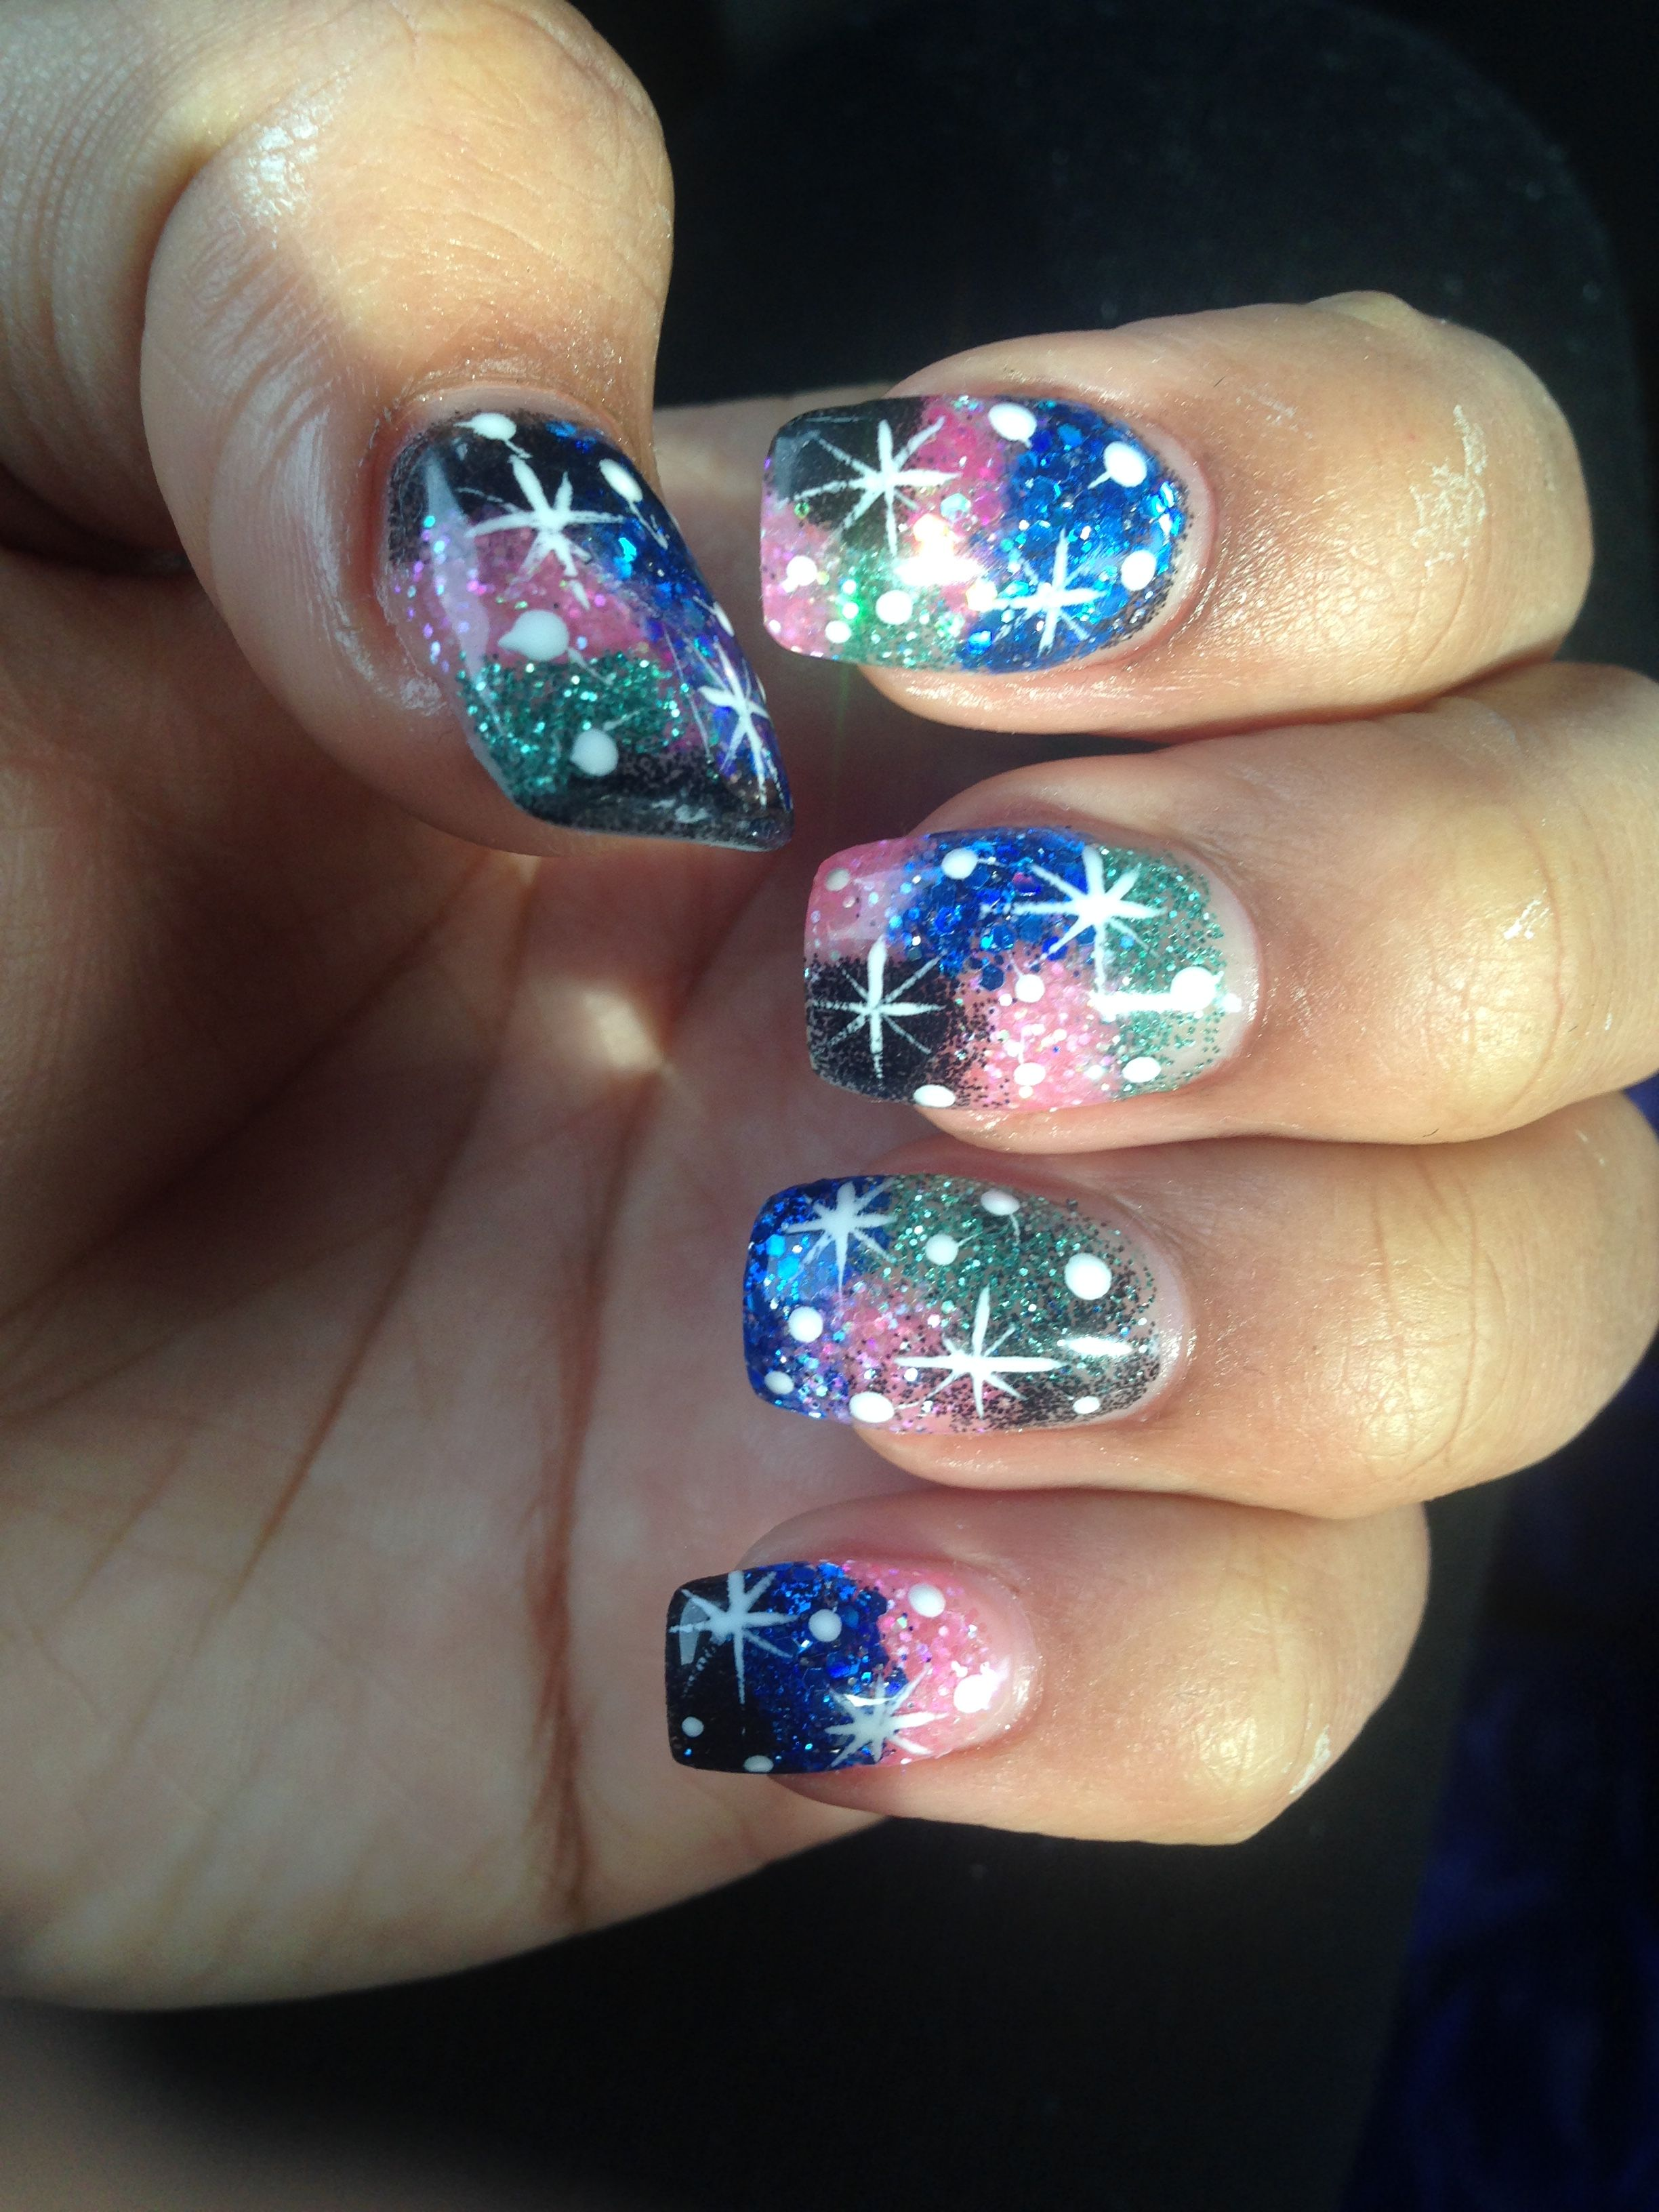 T Pro Nails Put Green Blue Black Purple And Pink Sparkles With A White Design For The Stars Pink Sparkles Black Nail Designs Purple Design